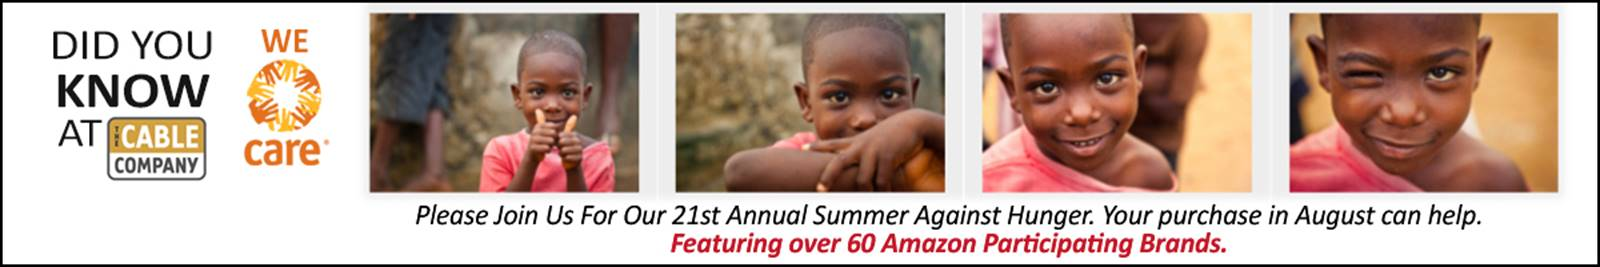 Summer Against Hunger 2016